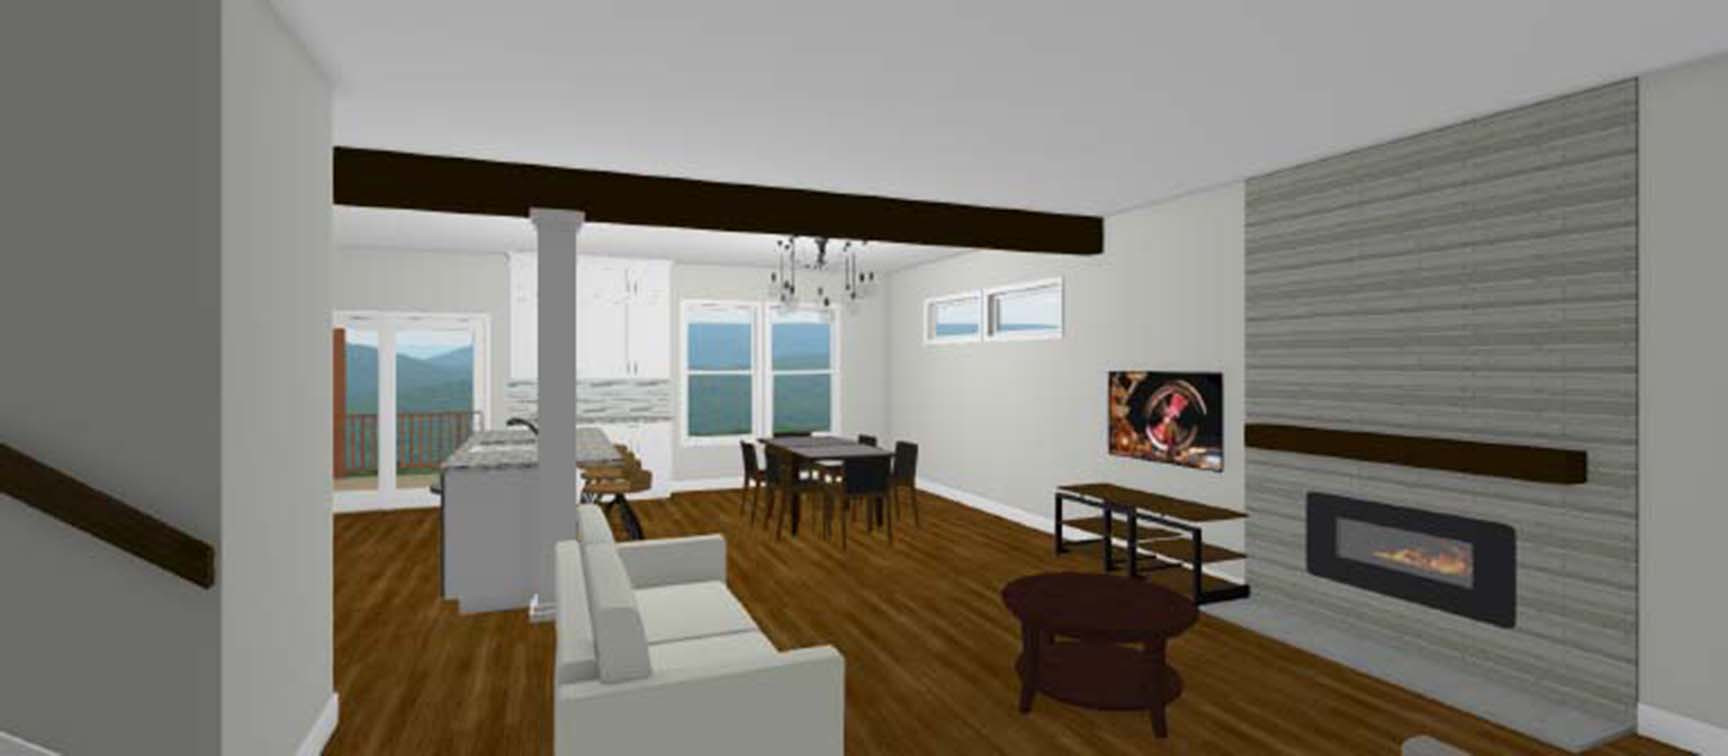 The Orlando Living and Dining Rendering